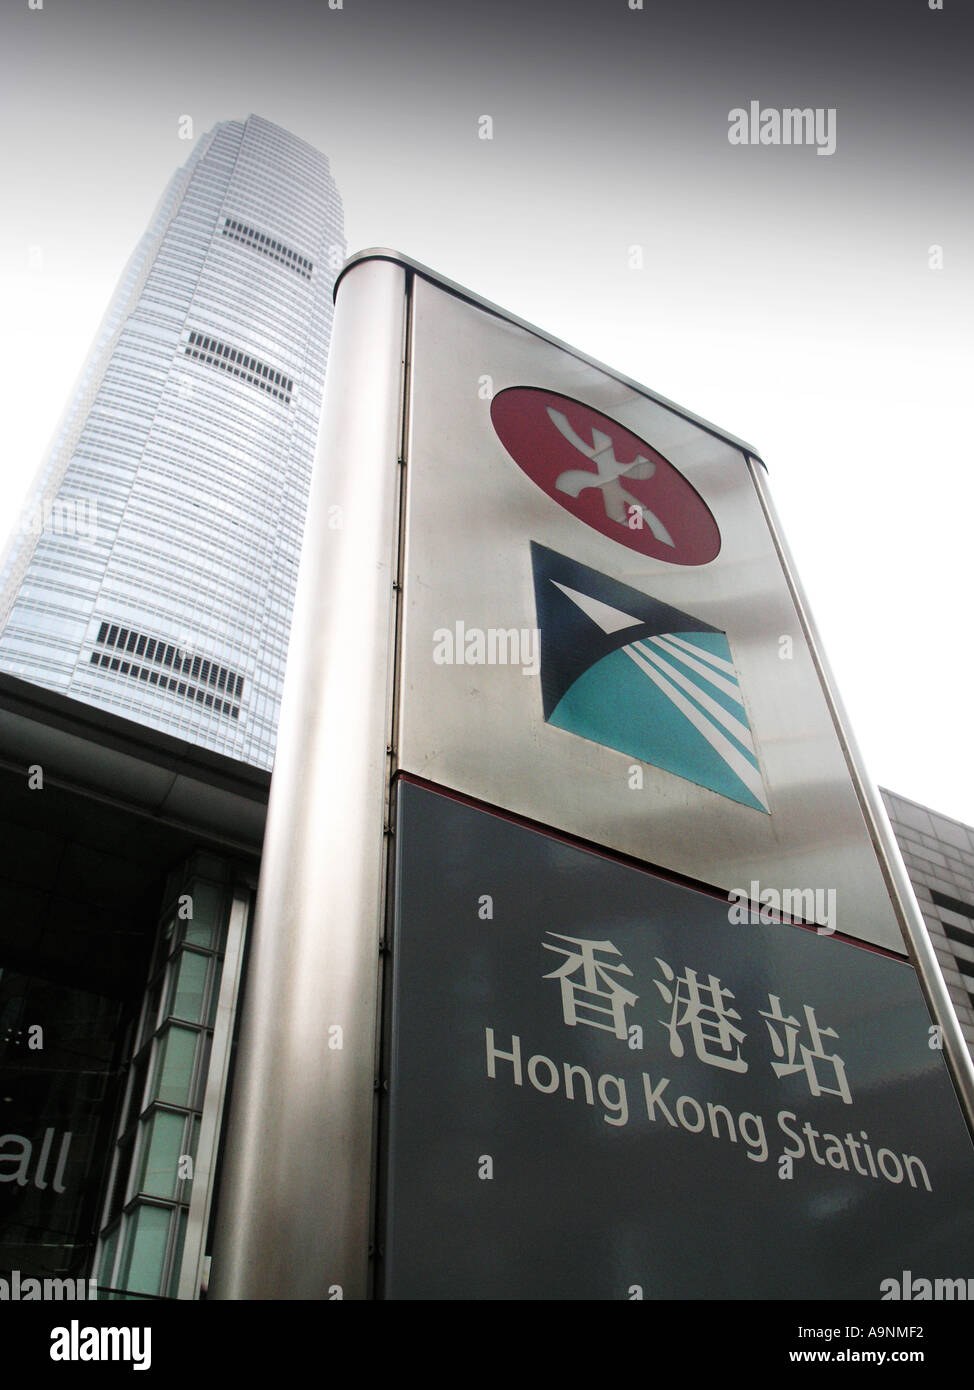 Hong Kong station sign symbol central district HK china chinese asia asian travel logistic transport transportation to the airpo - Stock Image